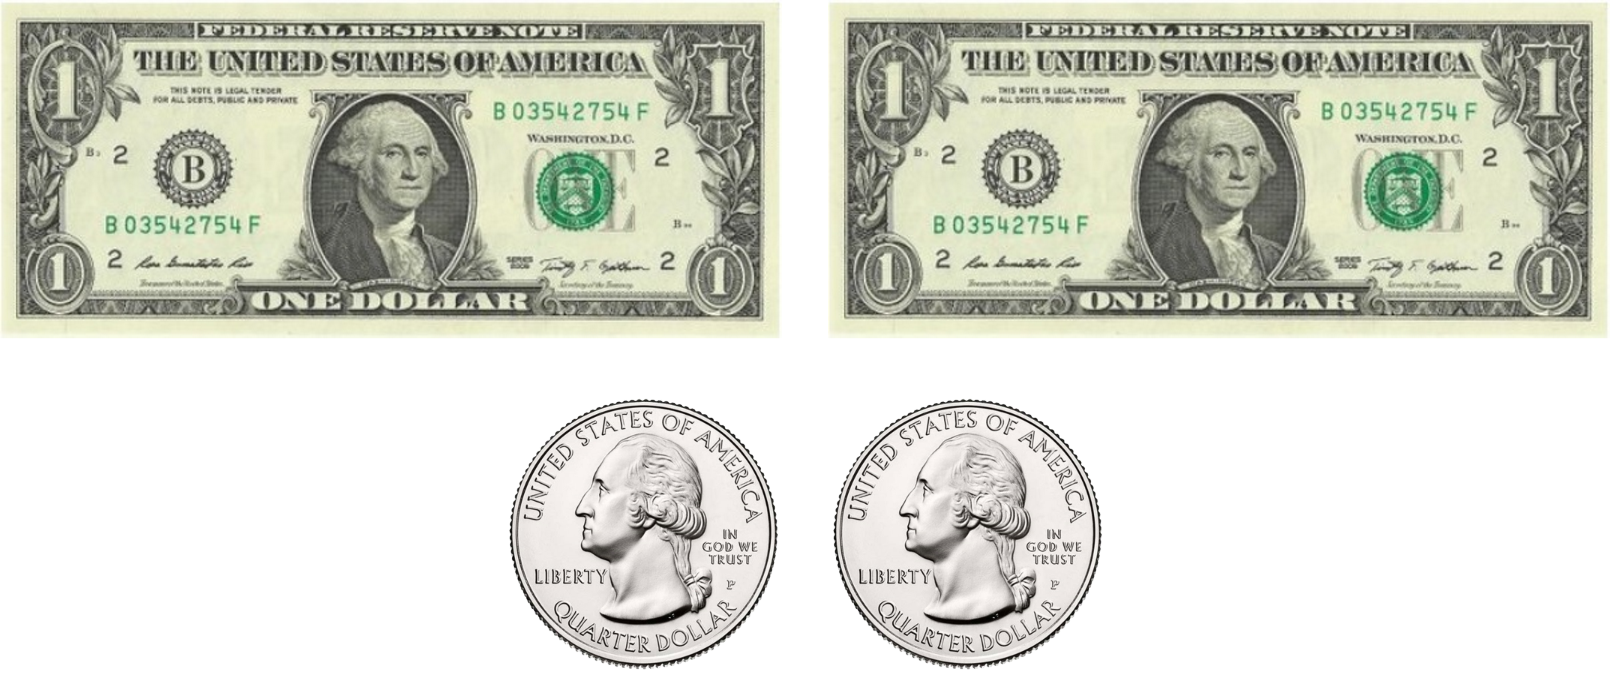 Two one dollar bills and two quarters.